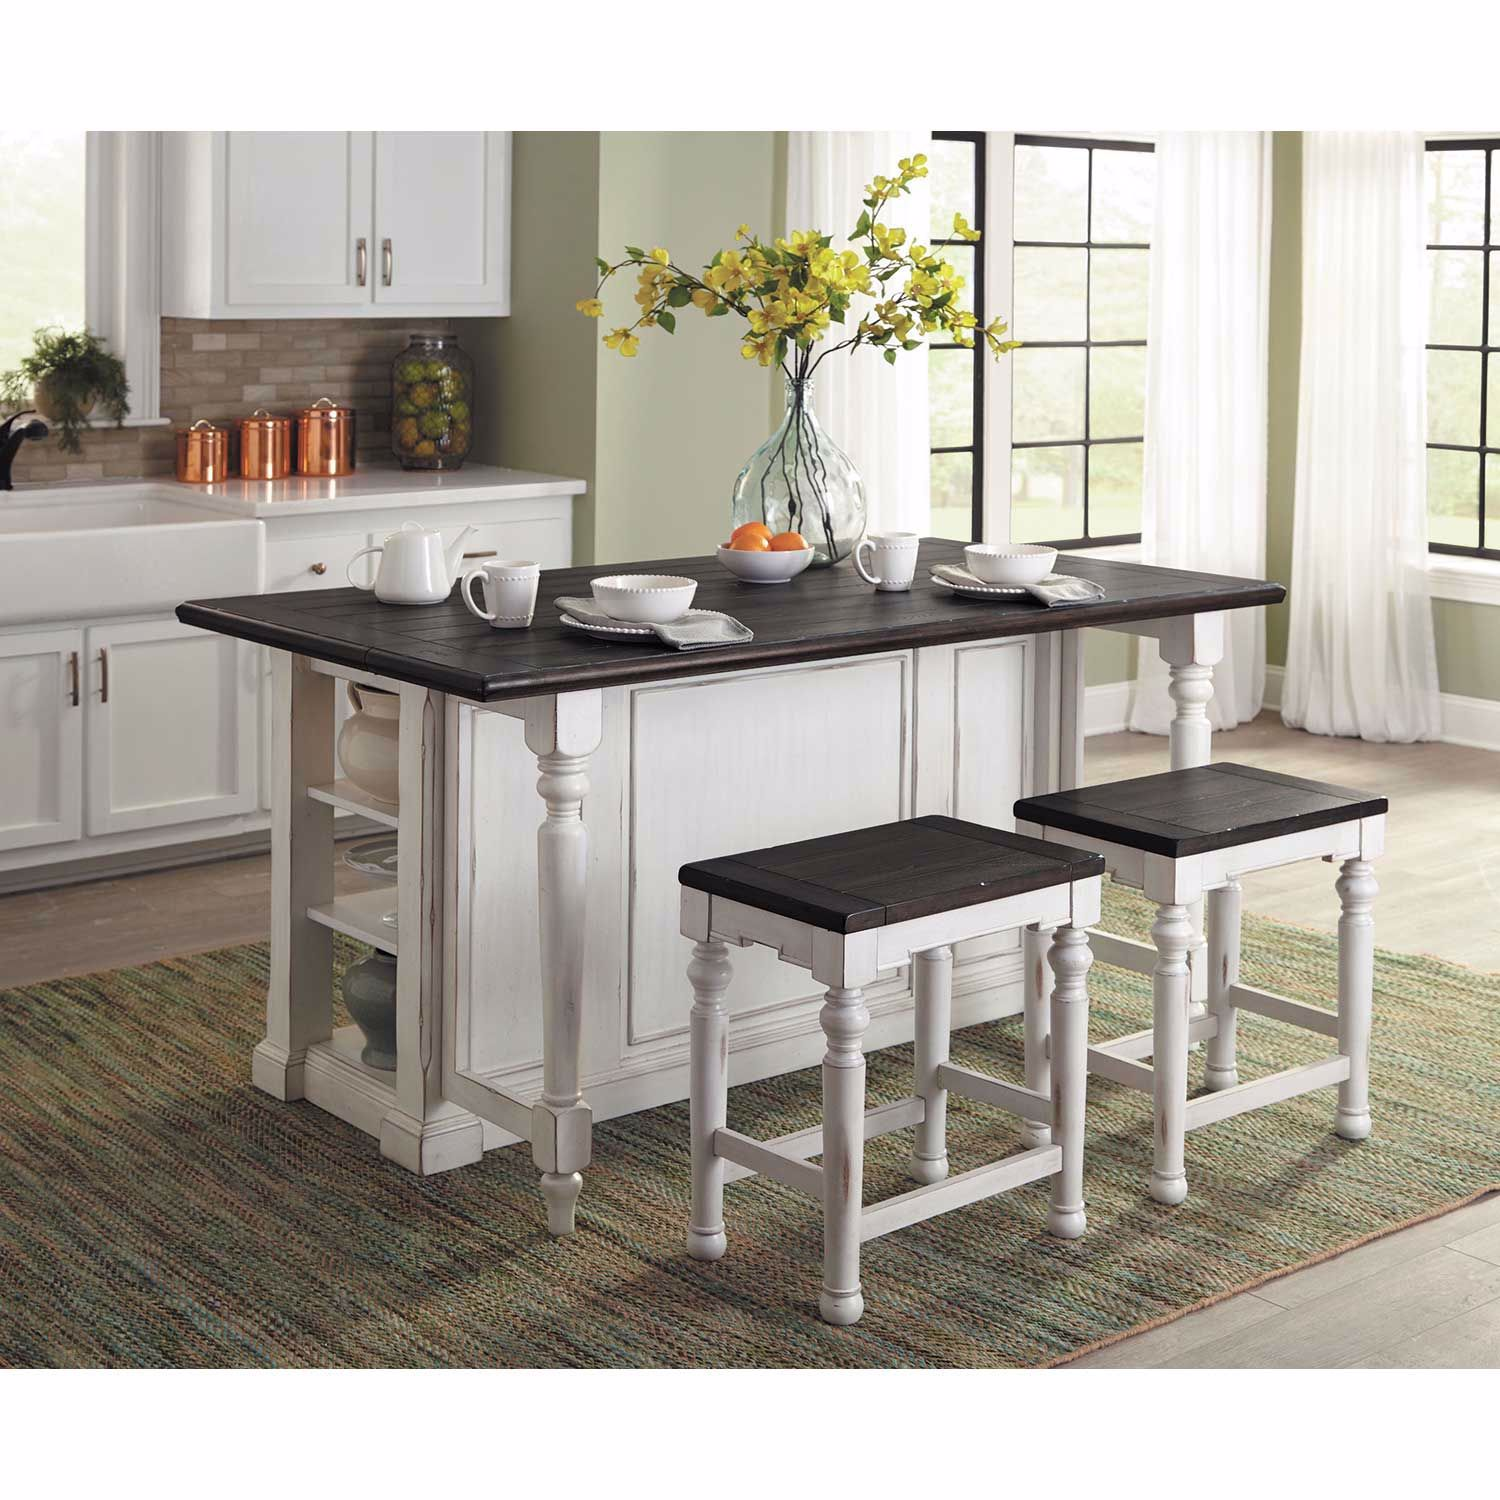 French Country Kitchen Island T1016ec T T 1016ec B Sunny Designs Afw Com